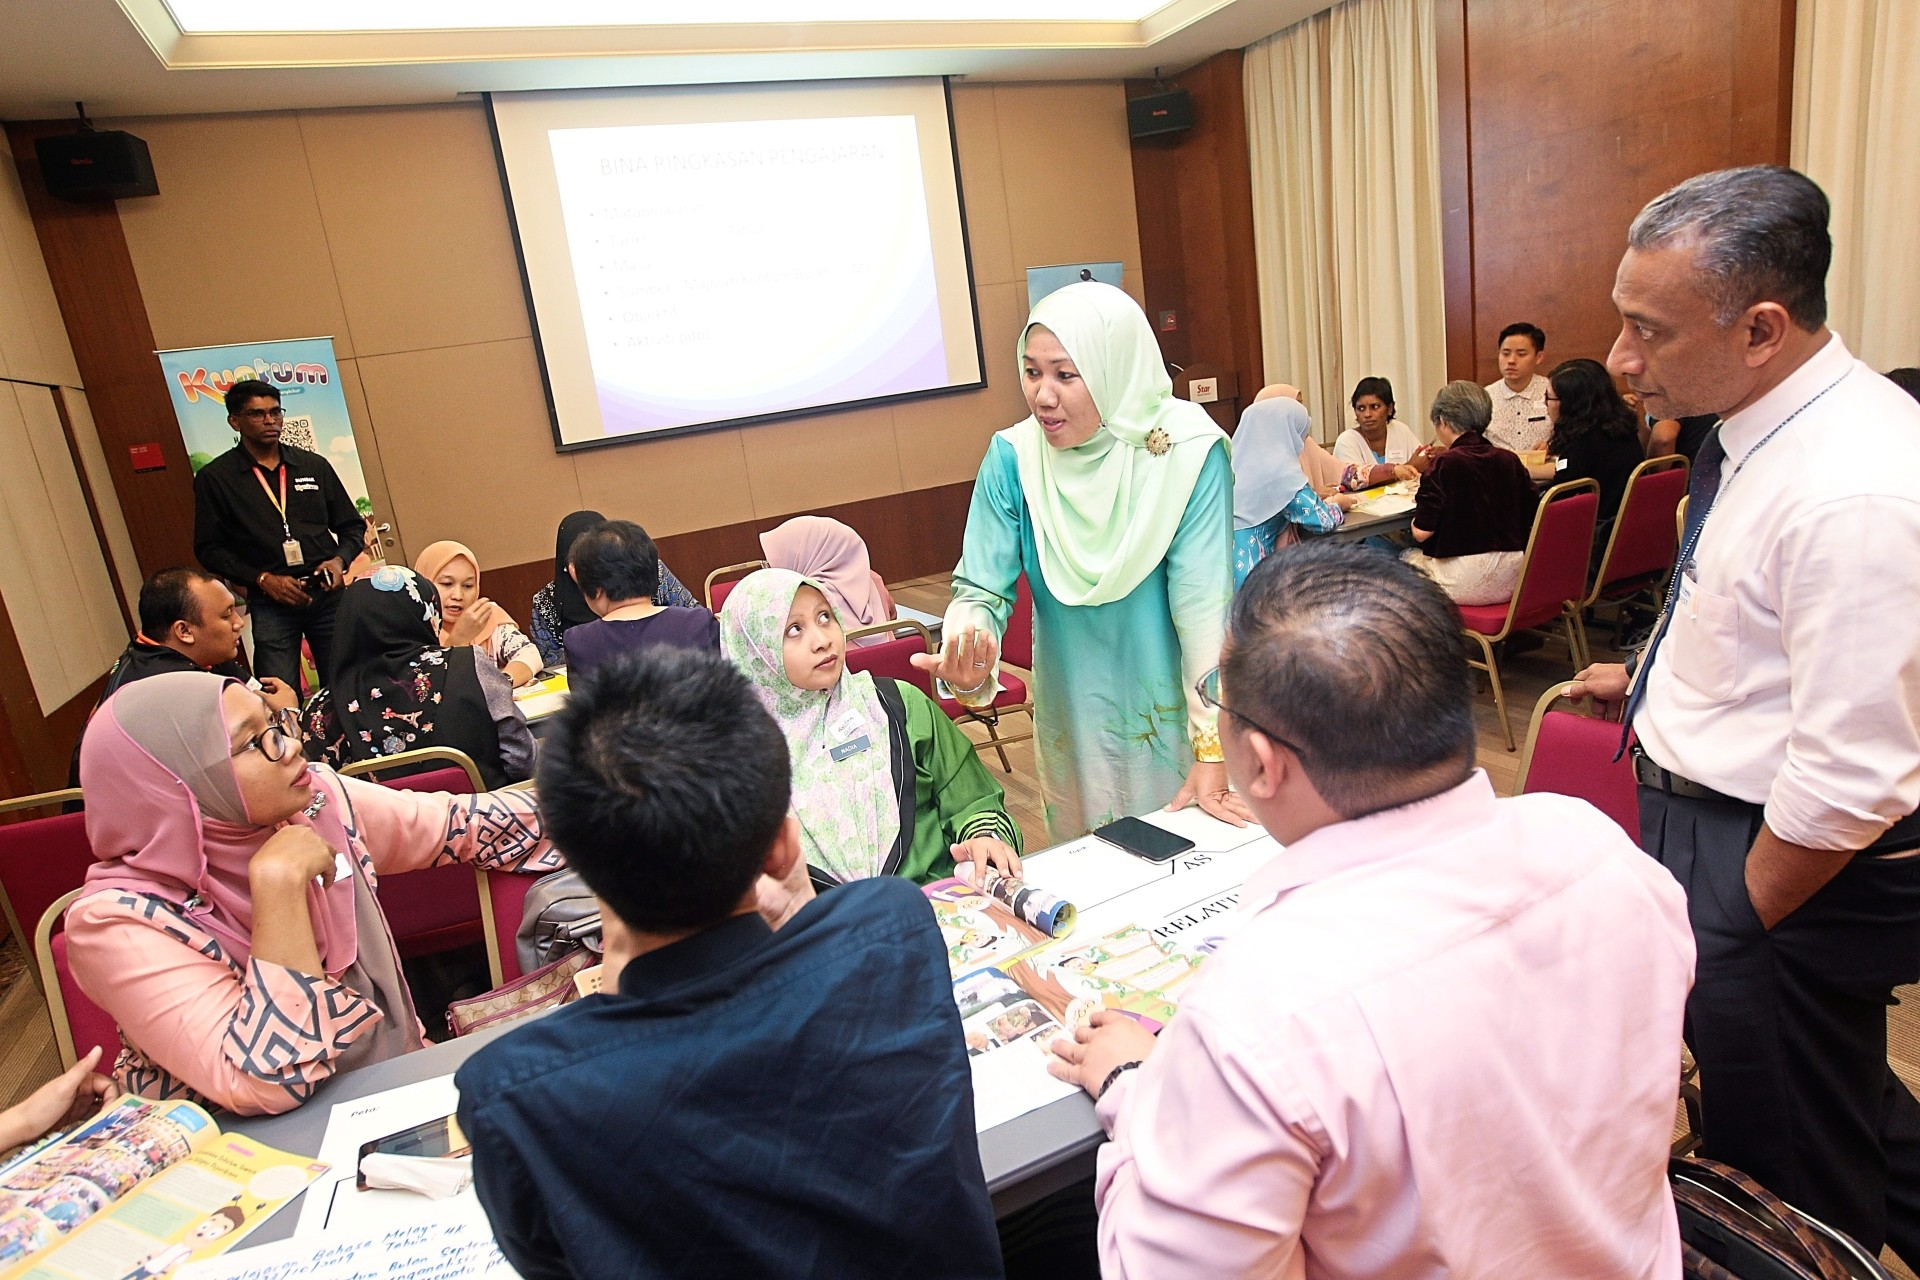 Norafizah (in green baju kurung) facilitating a workshop for primary library and media teachers from Kuala Lumpur and Selangor while Mohd Zaki (right) looks on.